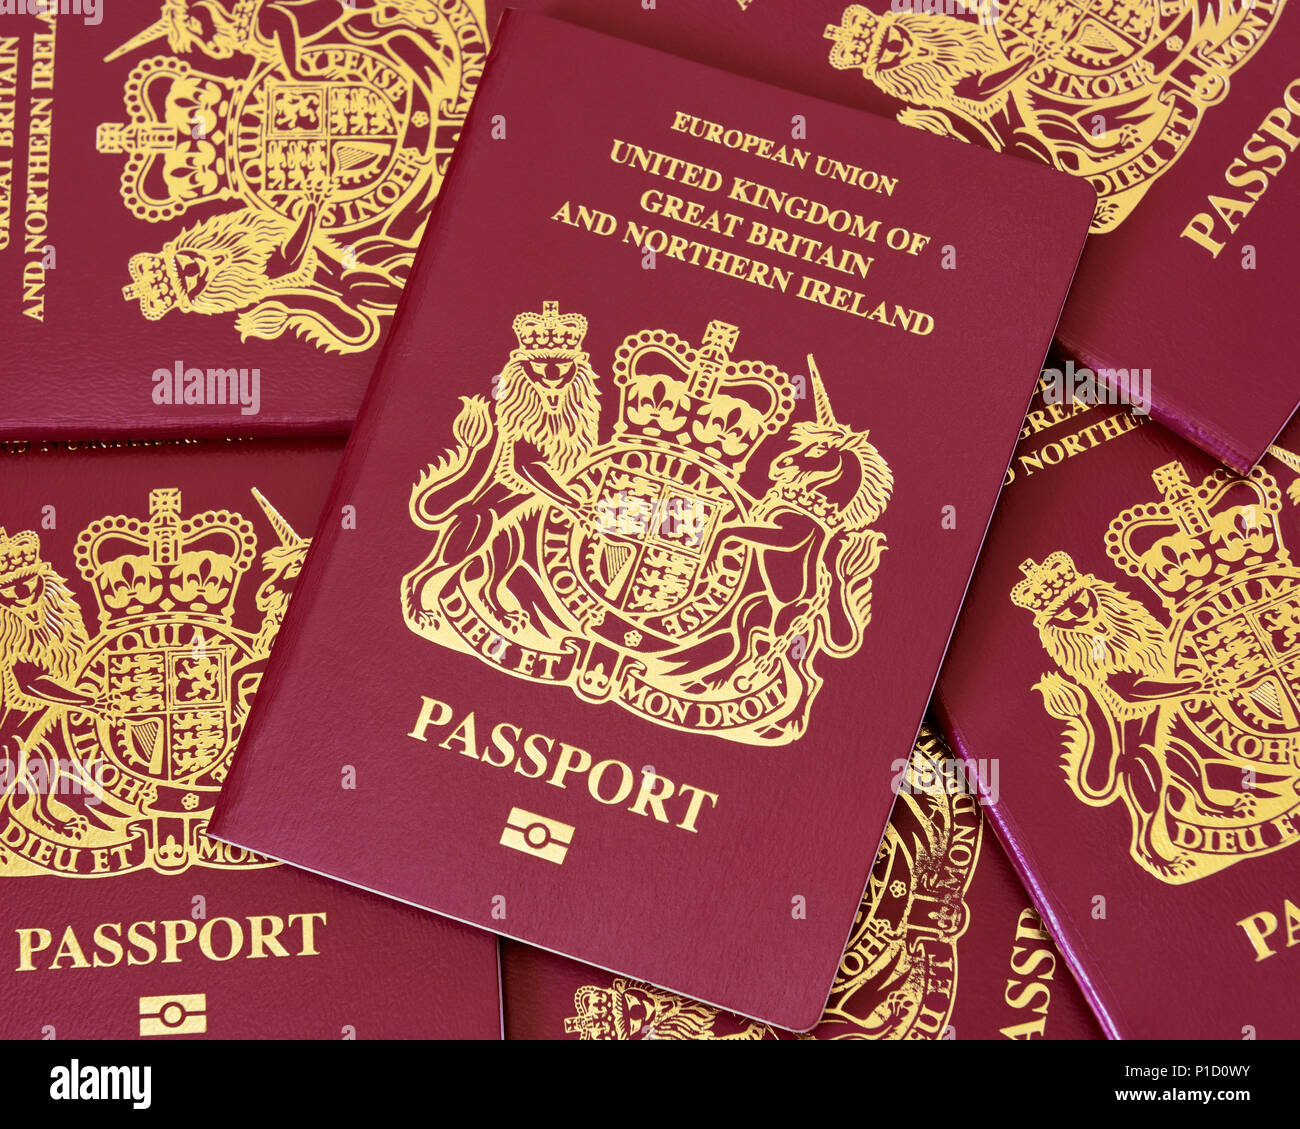 British PassportStock Photo